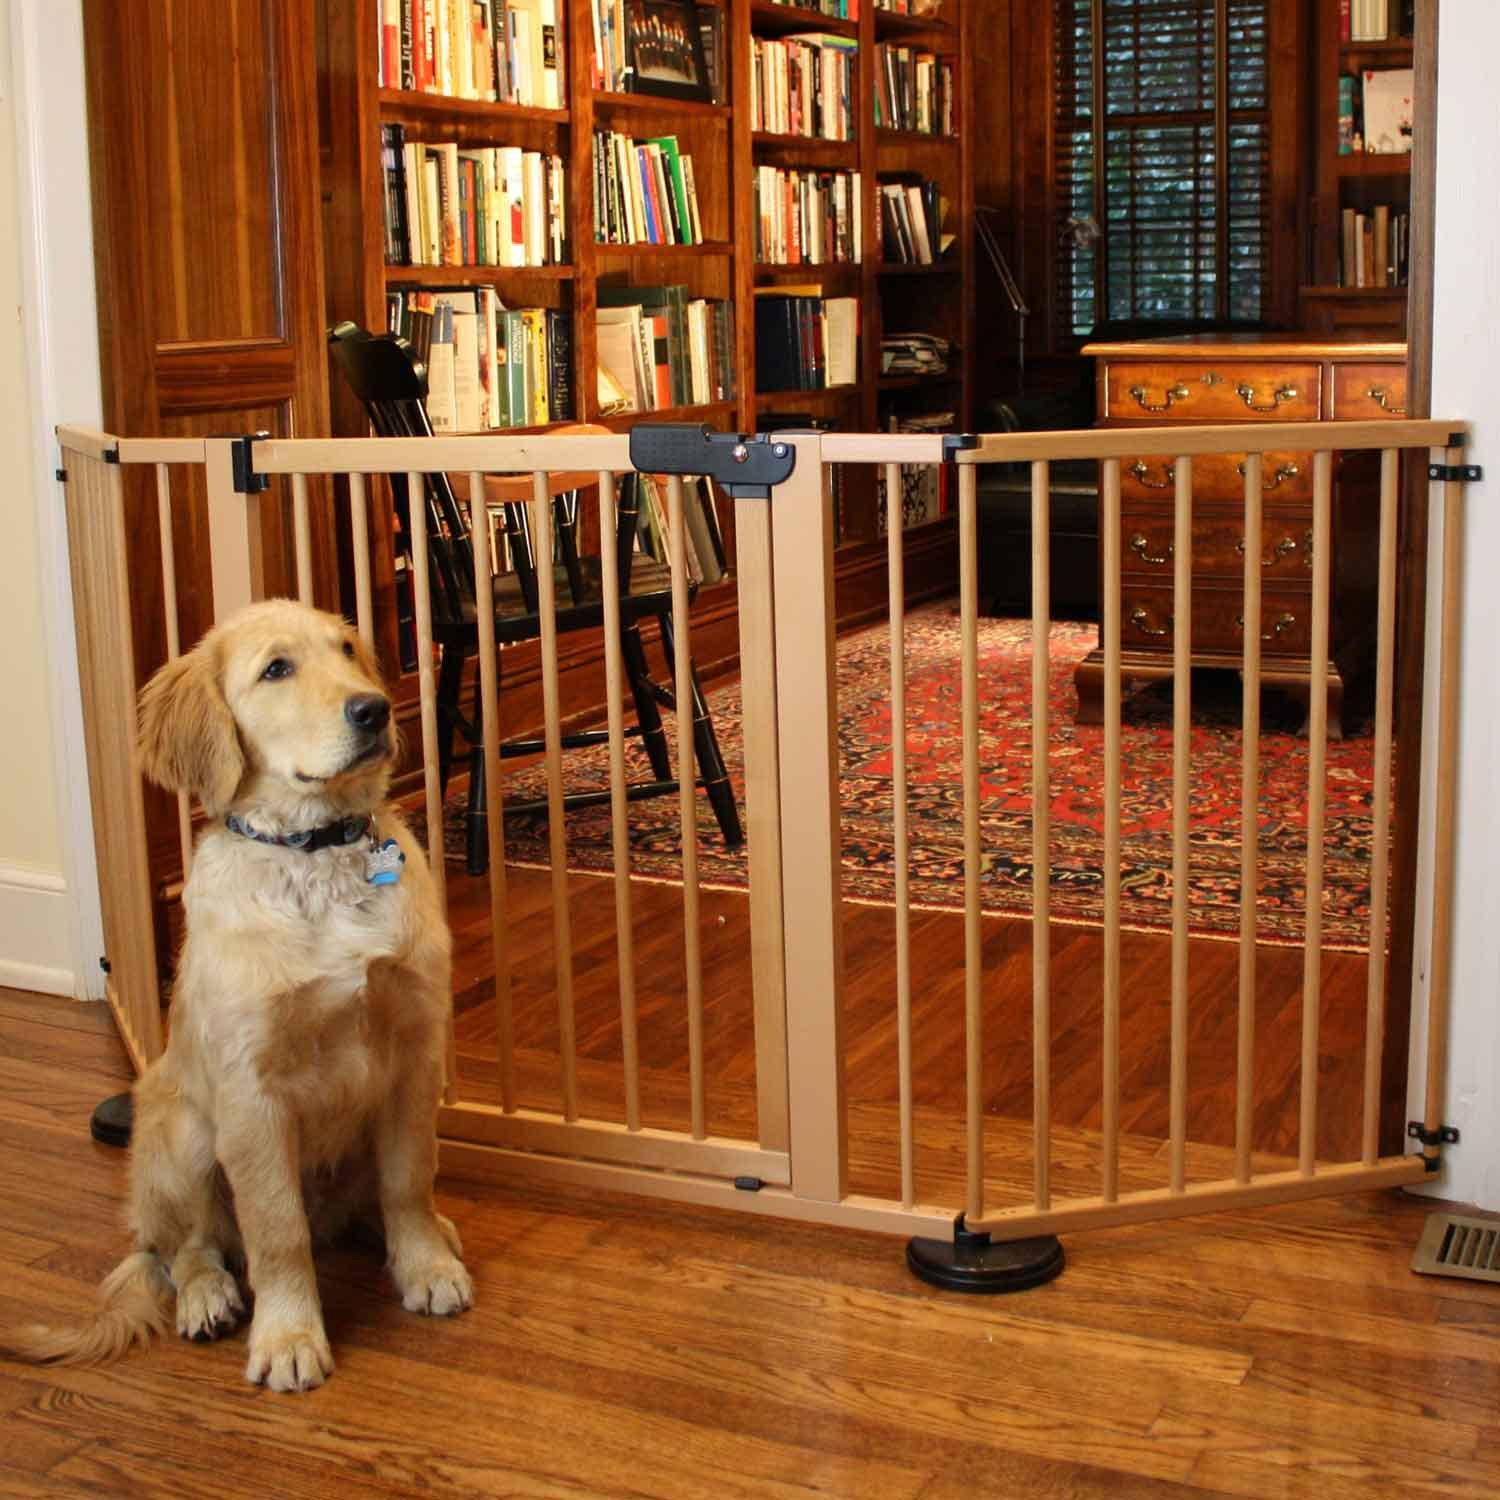 Amazon.com : Cardinal Versagate Pet Gate, 40 Inch L By 31 Inch H By 3 Inch  W, White : Indoor Safety Gates : Pet Supplies